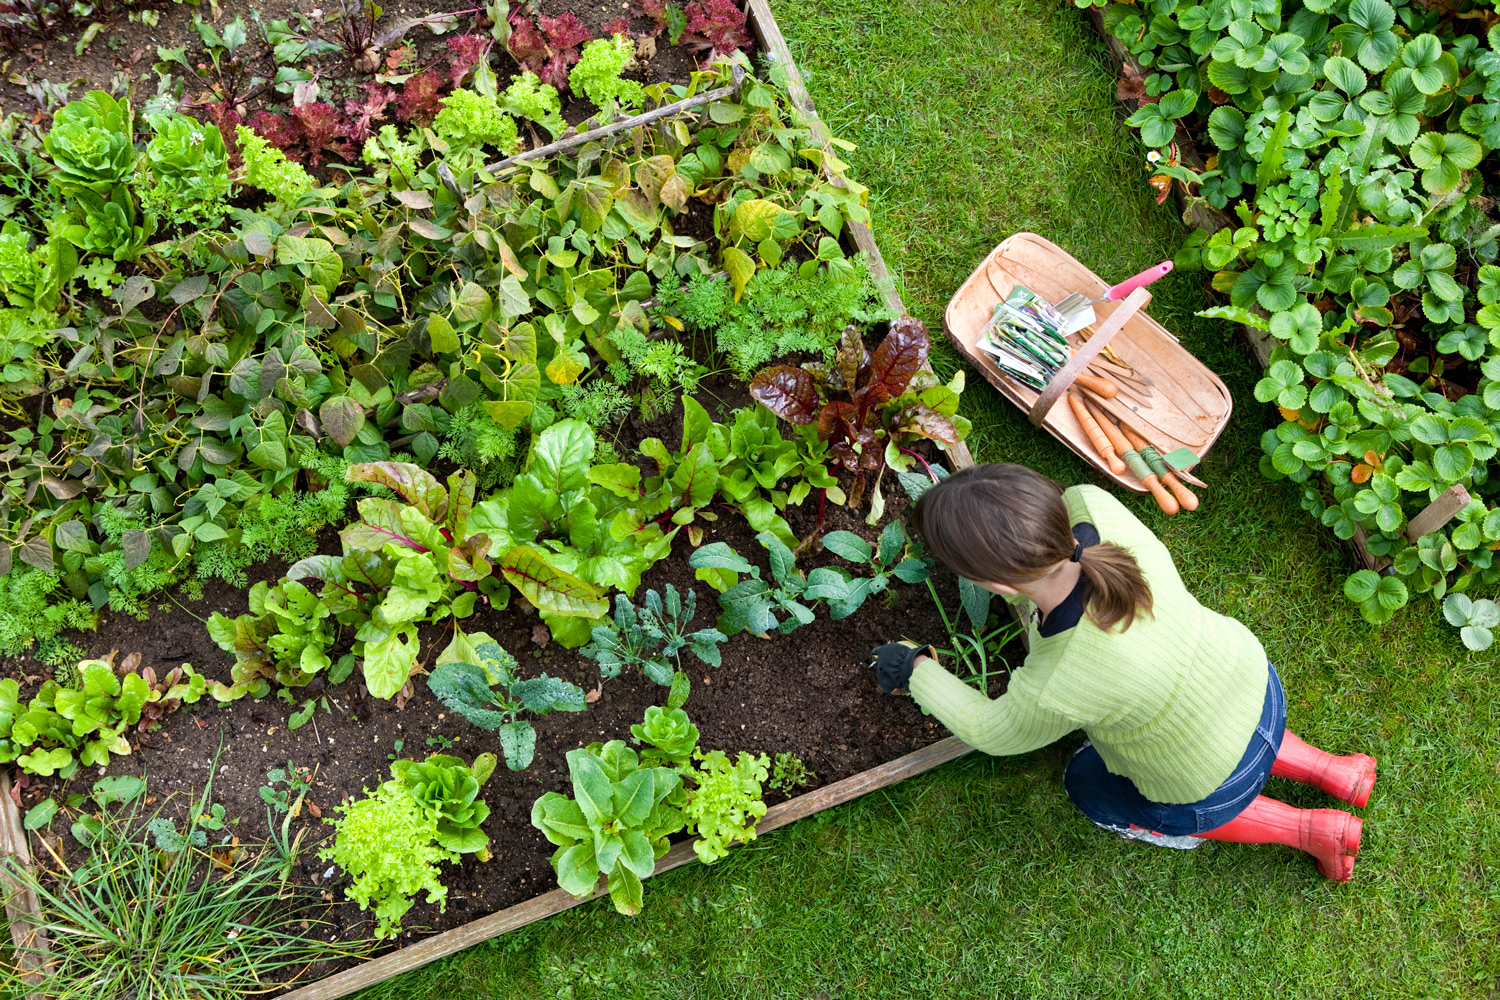 How Gardening Could Help You Lose Weight